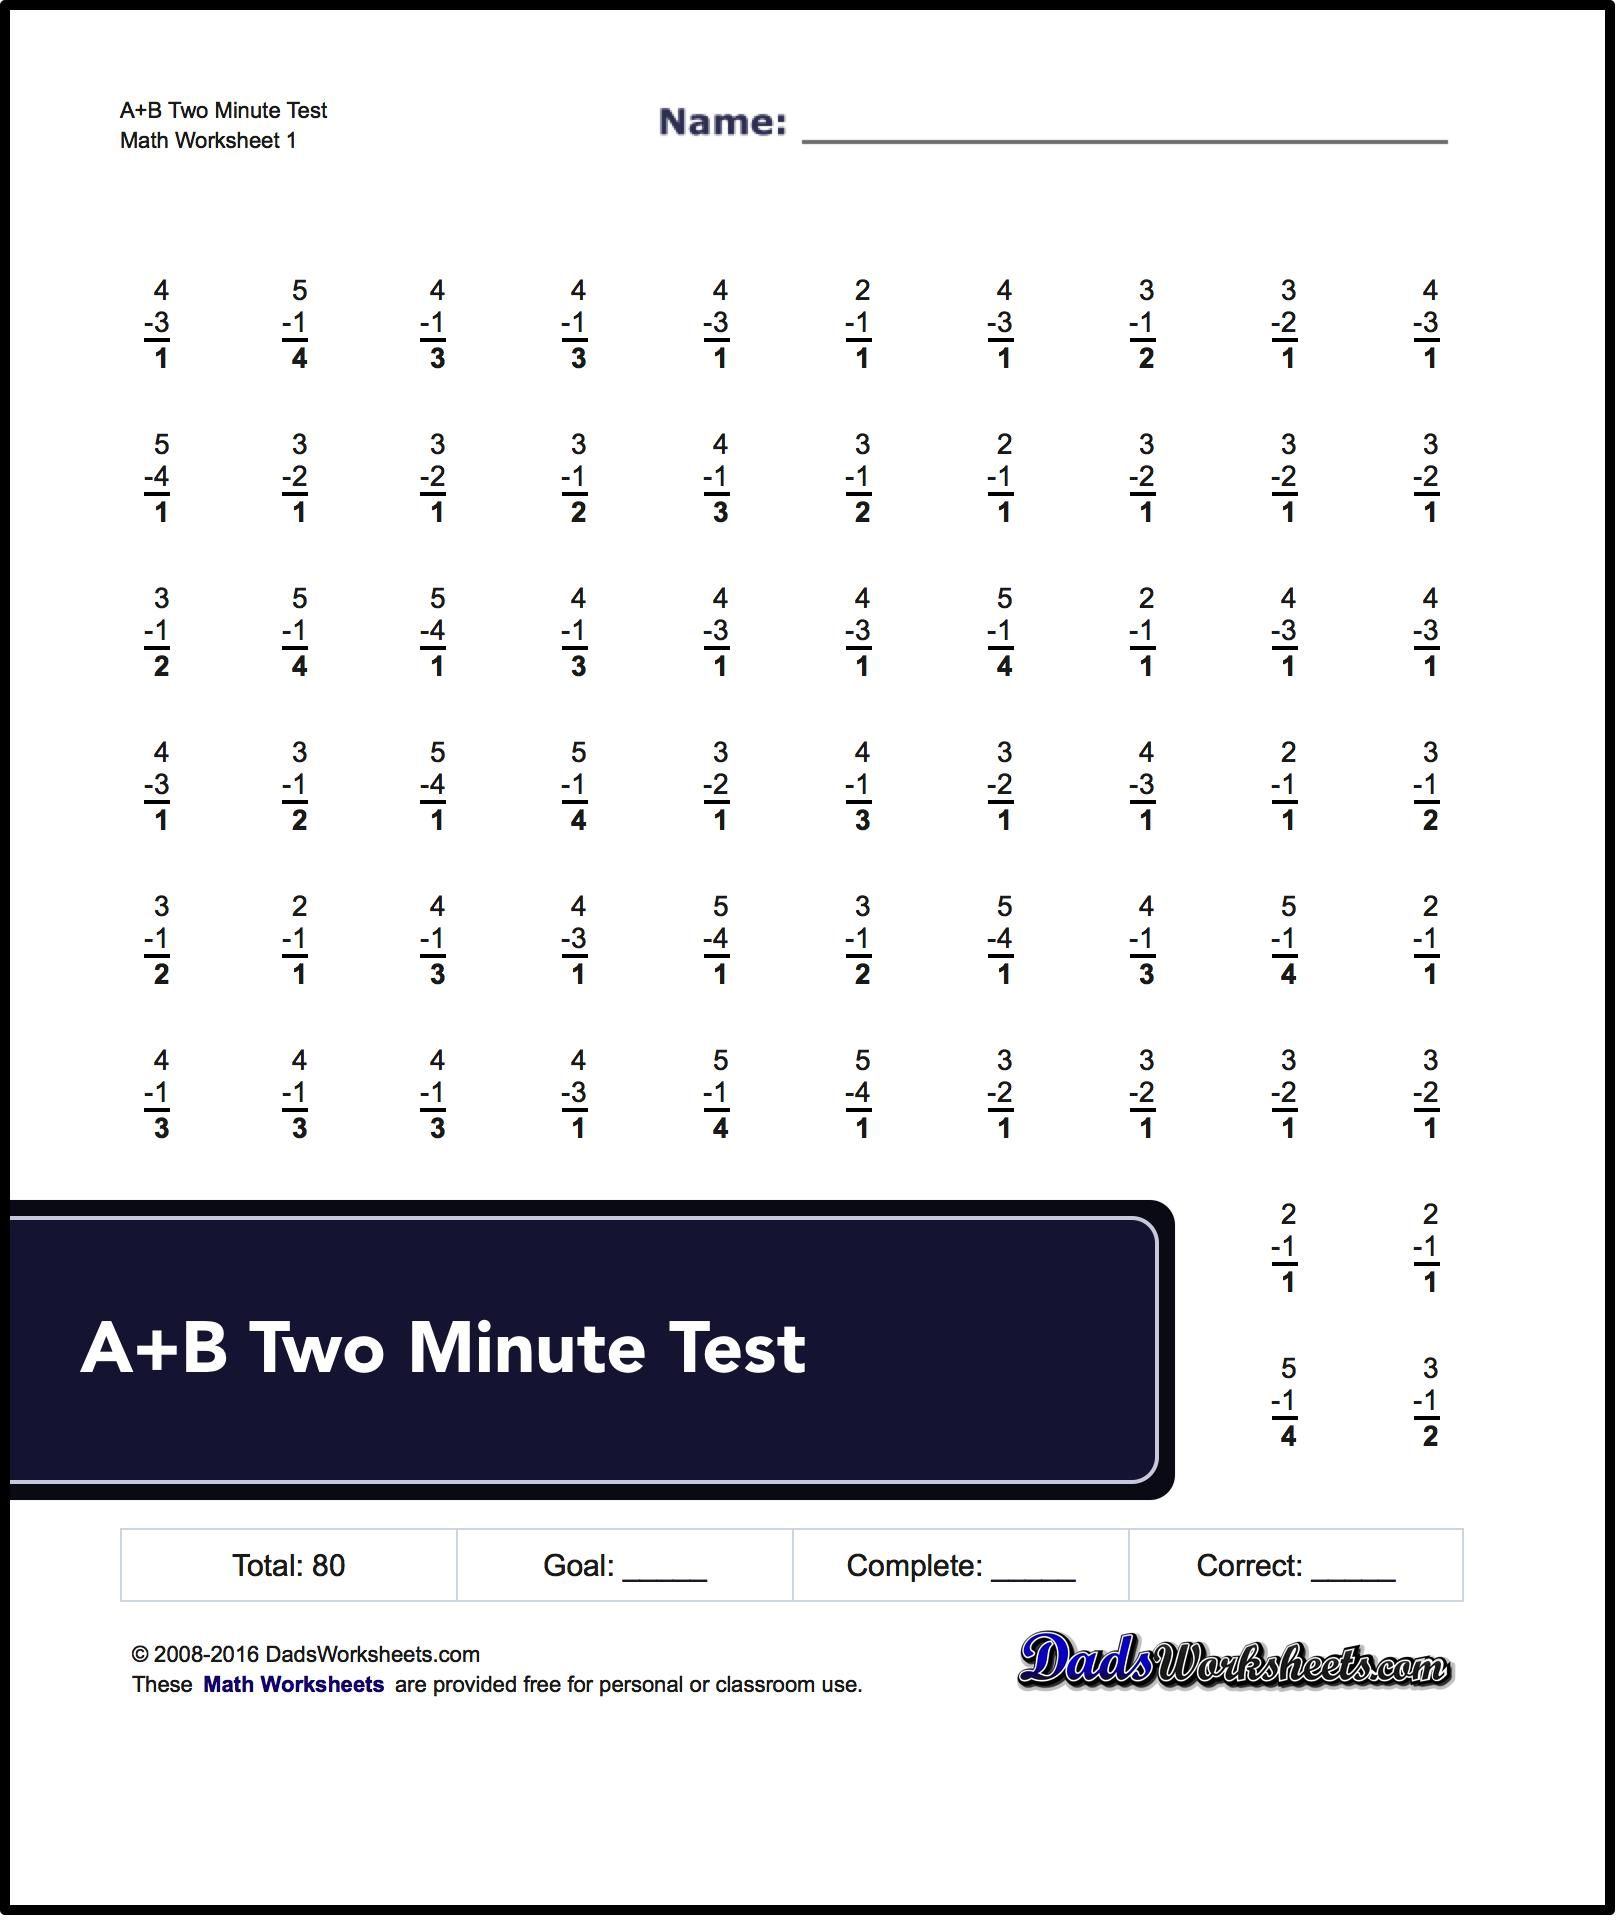 worksheet 100 Addition Problems two minute versions of the spaceship math subtraction worksheets with 80 and 100 problems per page